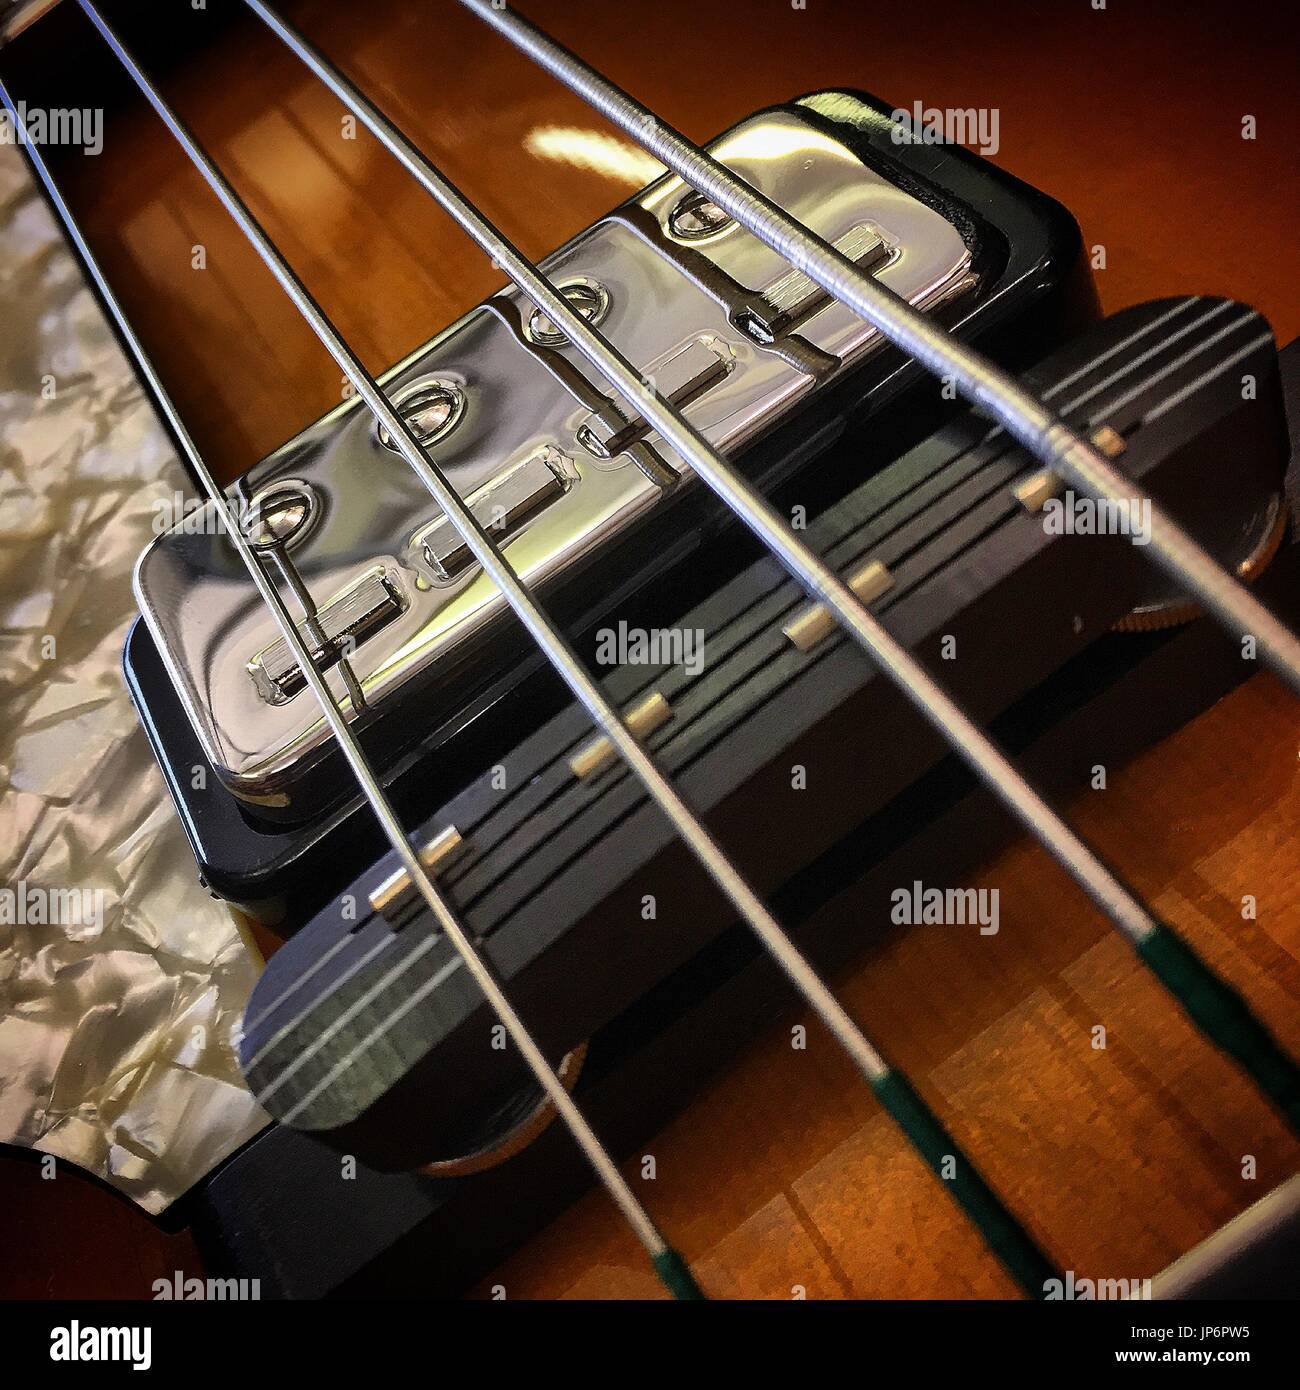 bowed stringed instrument - Stock Image